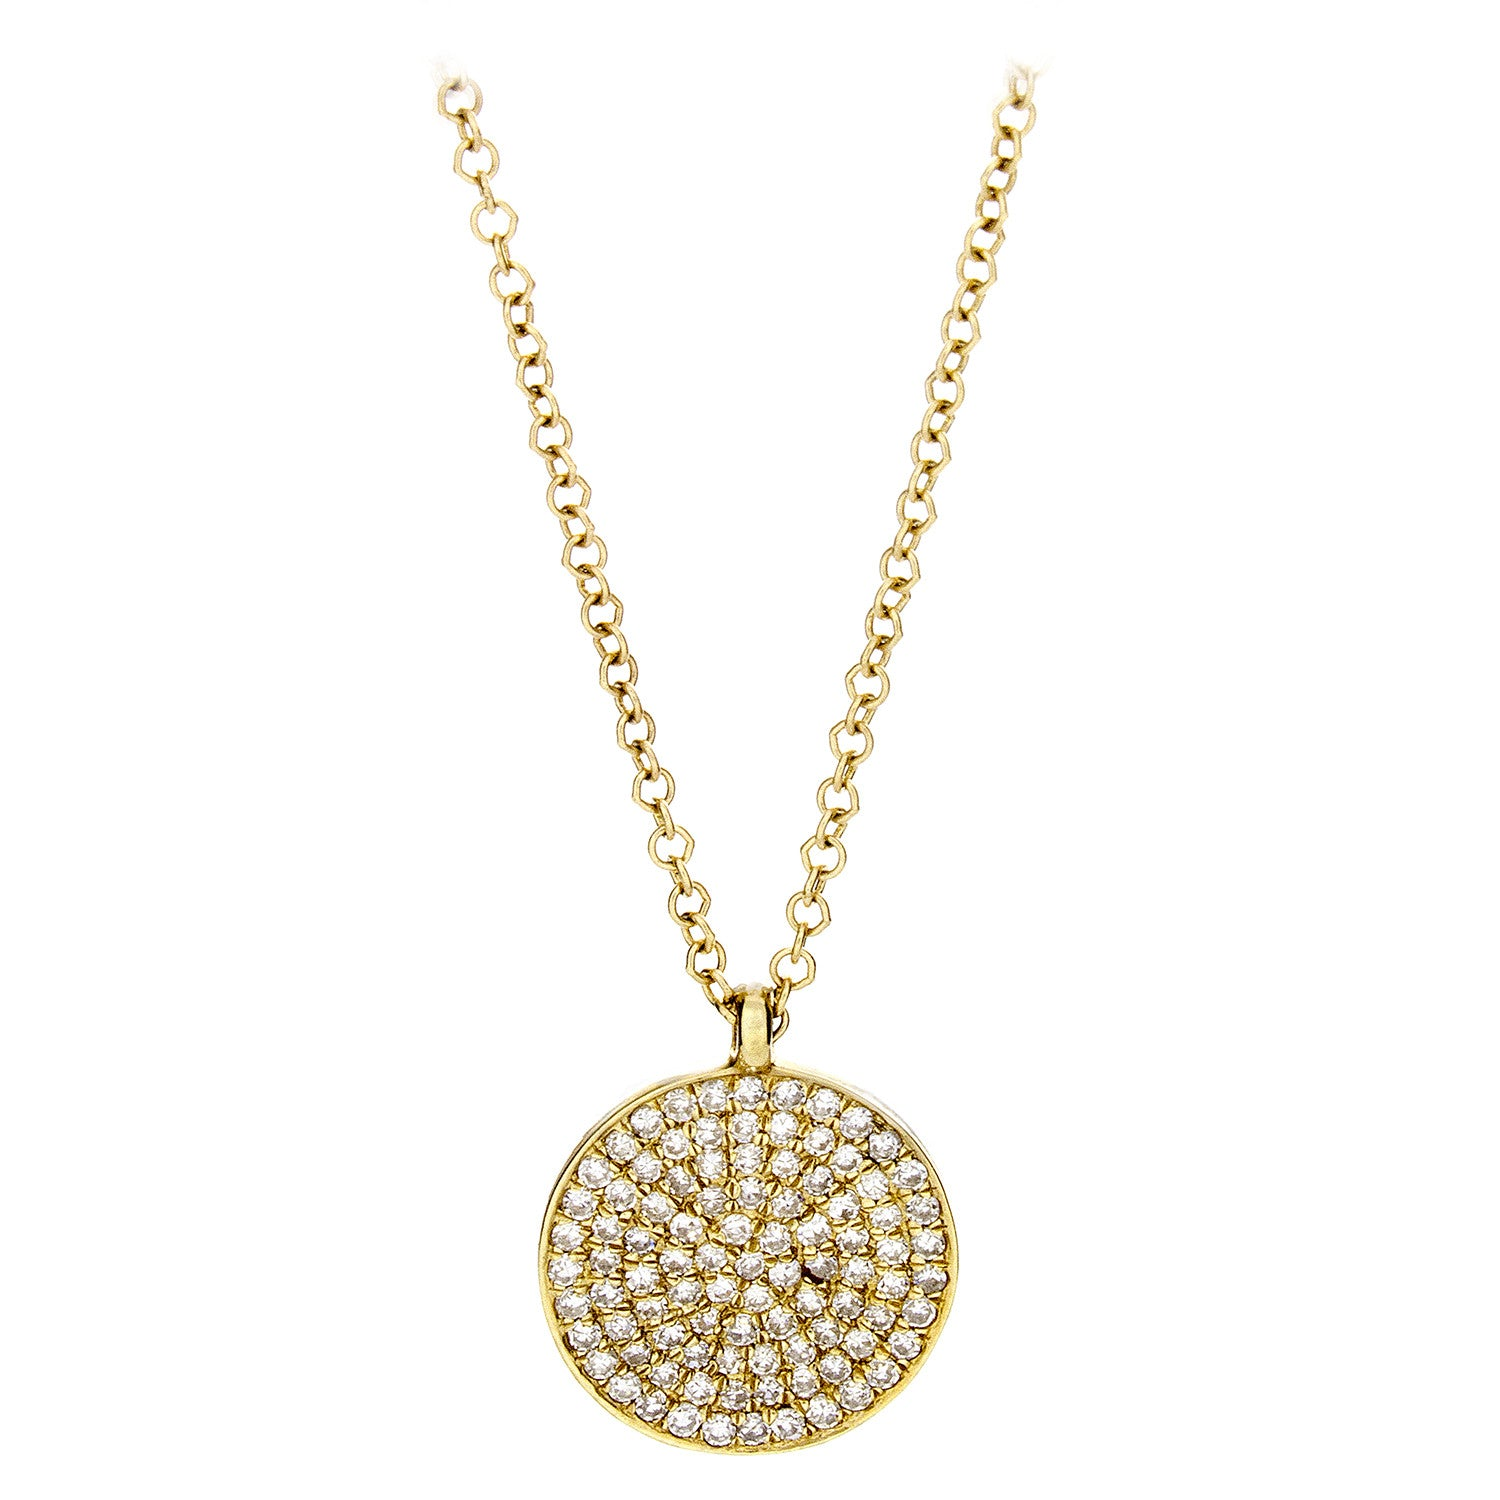 Diamond & 14K Yellow Gold Shield Pendant & Chain - SOLD/CAN BE SPECIAL ORDERED WITH 4-6 WEEKS DELIVERY TIME FRAME